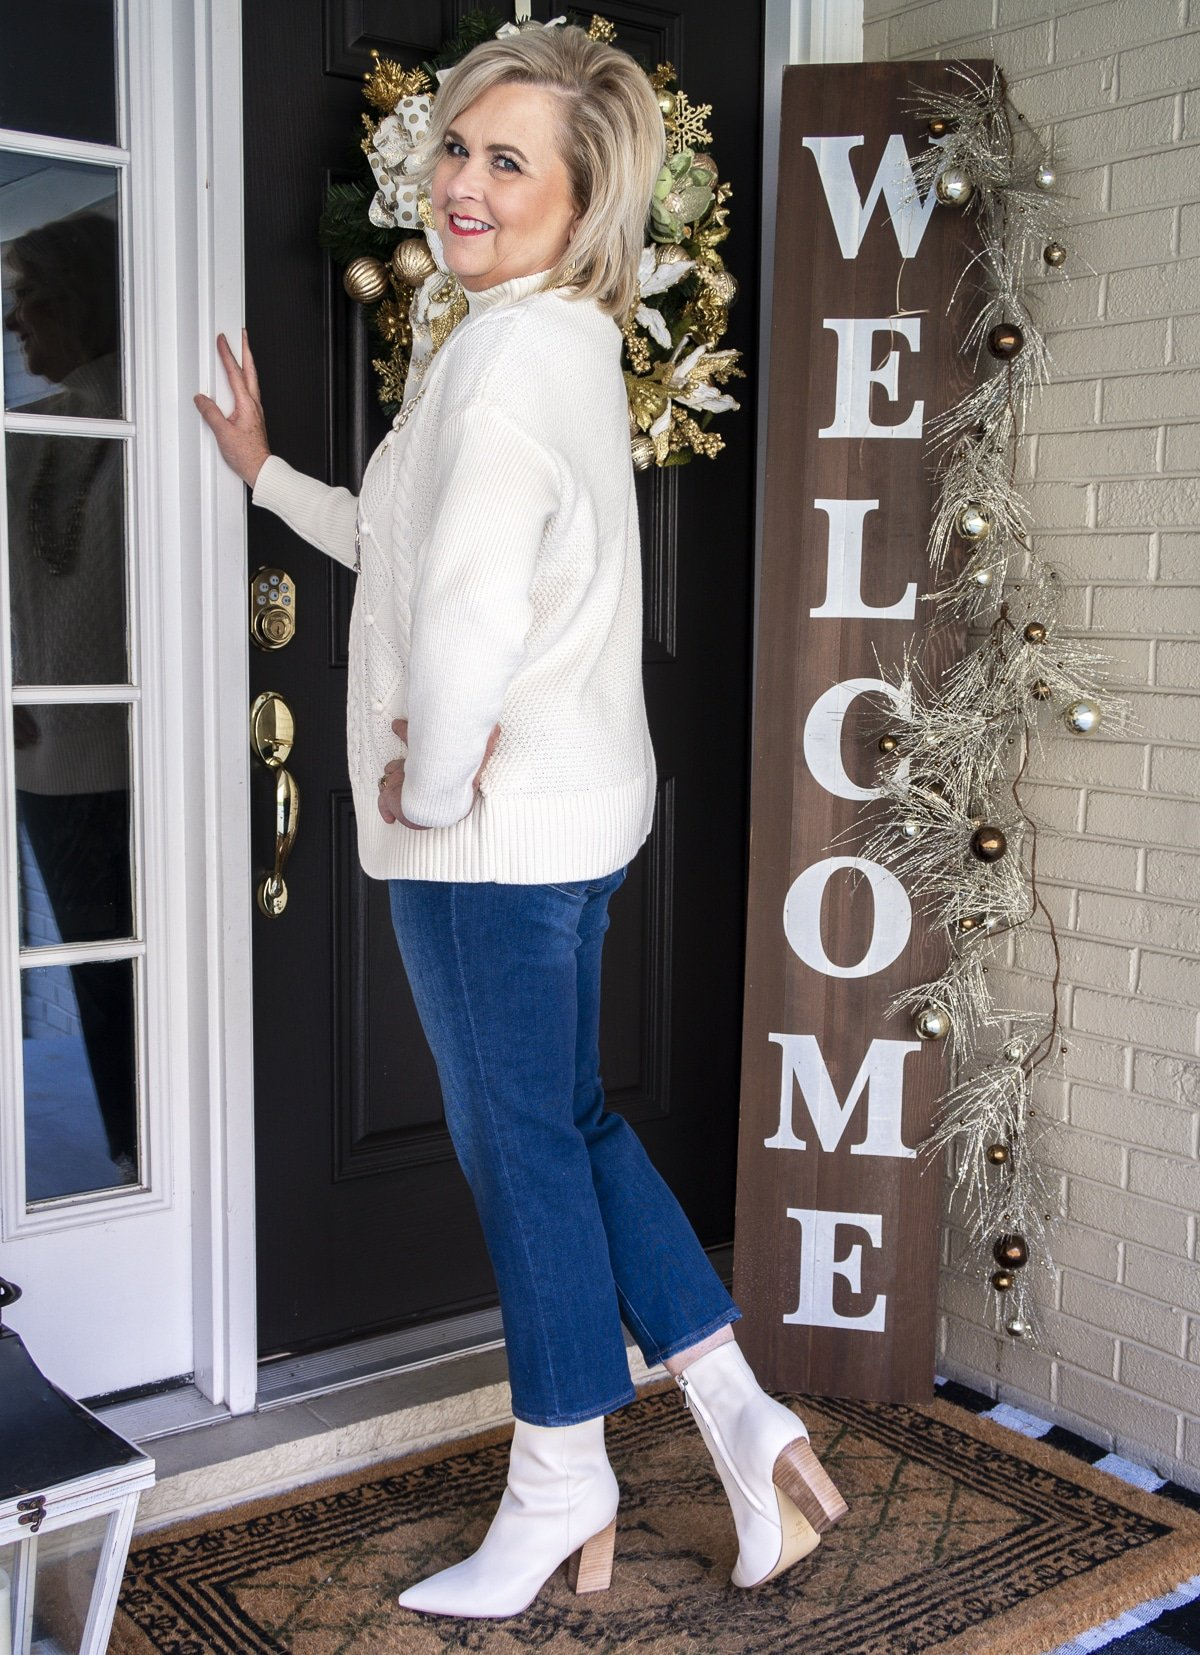 Fashion Blogger 50 Is Not Old is showing the back of a white cable-knit sweater, crop jeans, and white pointy toe ankle boots